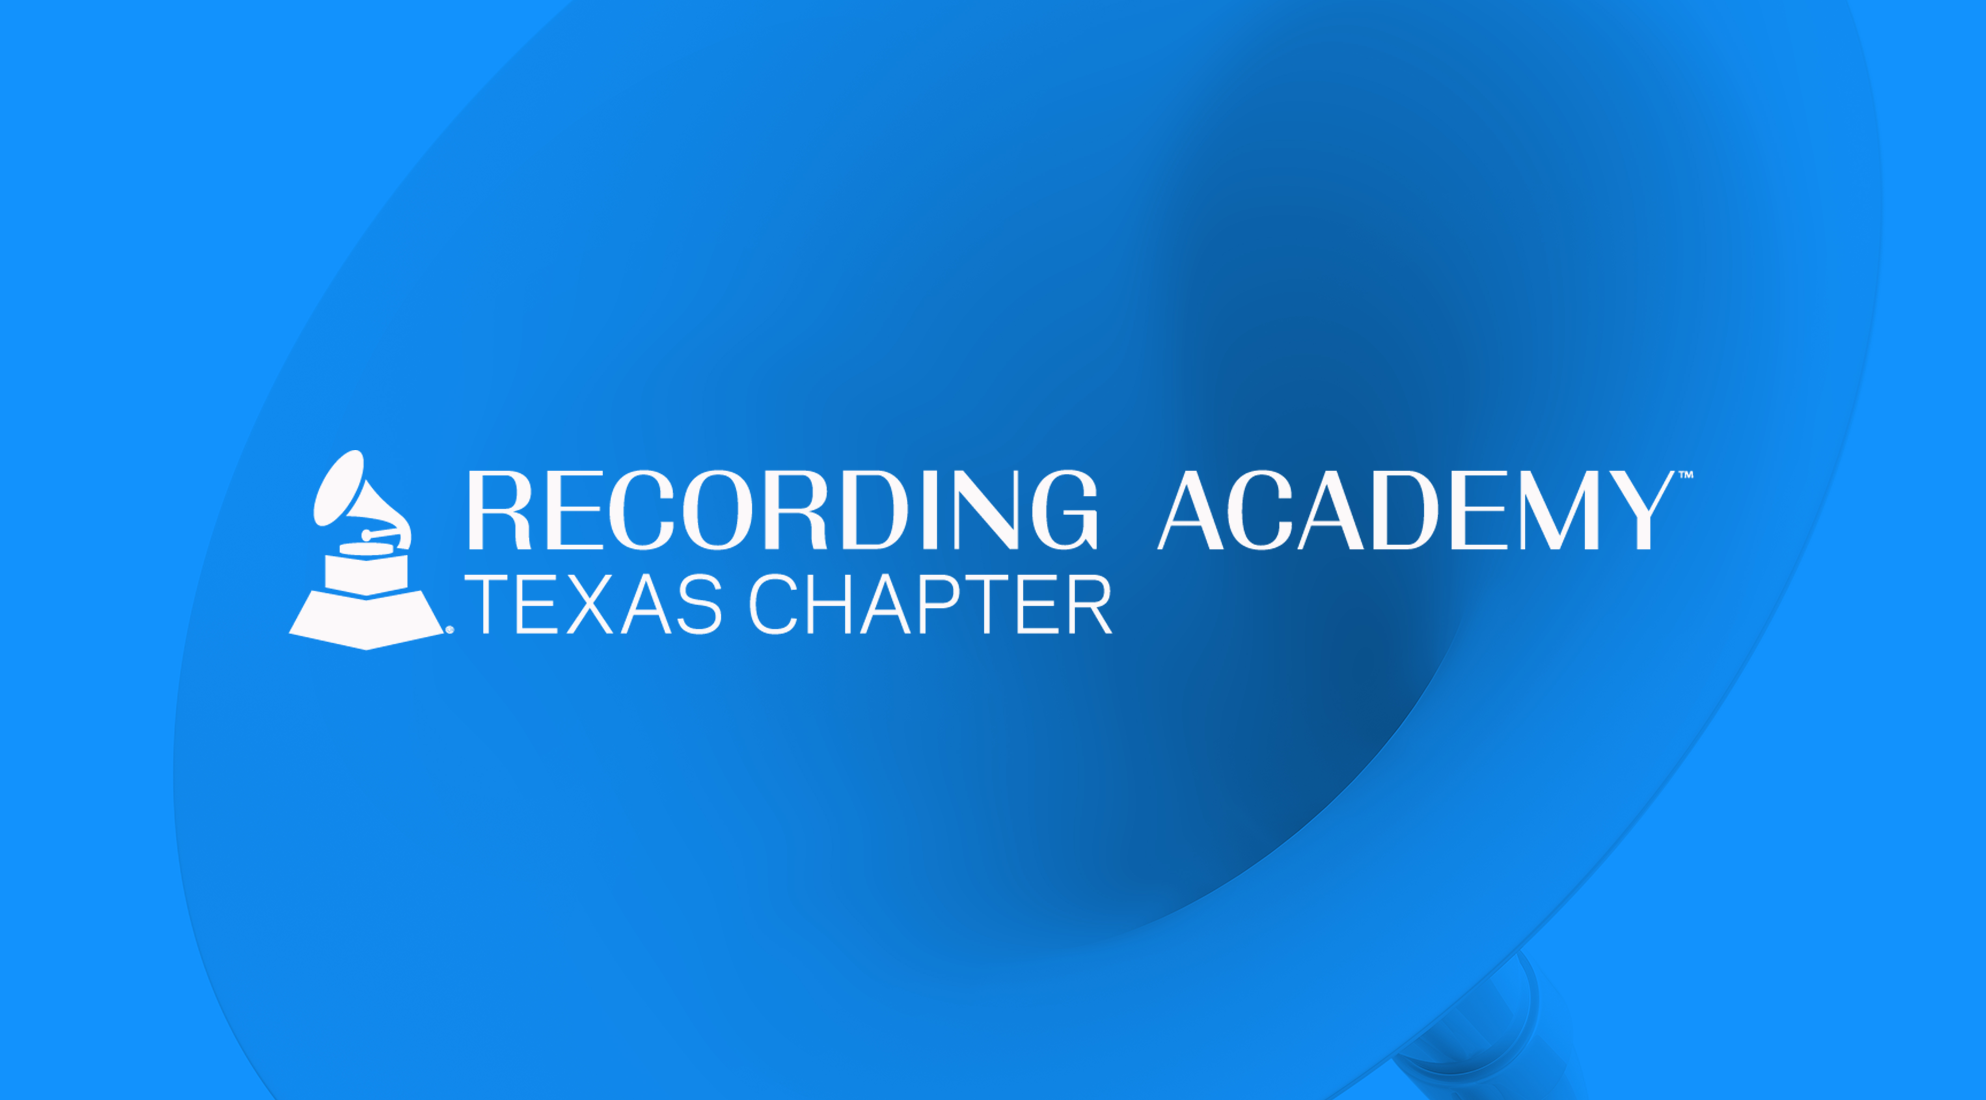 Recording Academy Texas Chapter